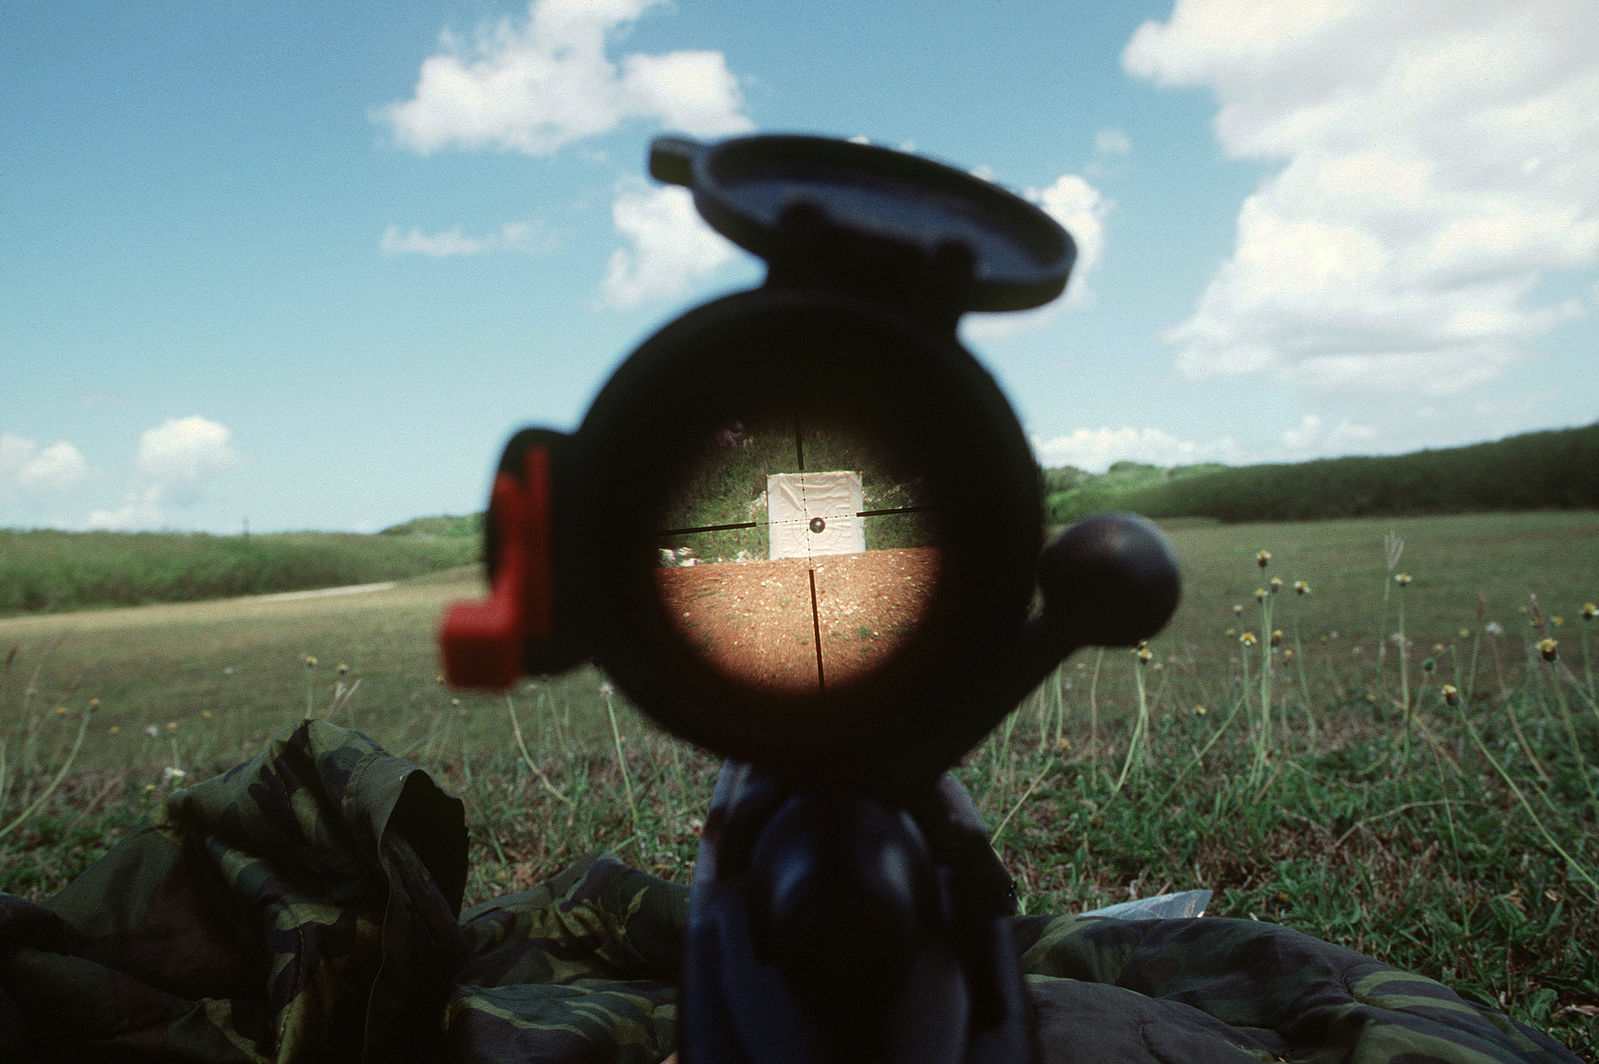 a view from a scope